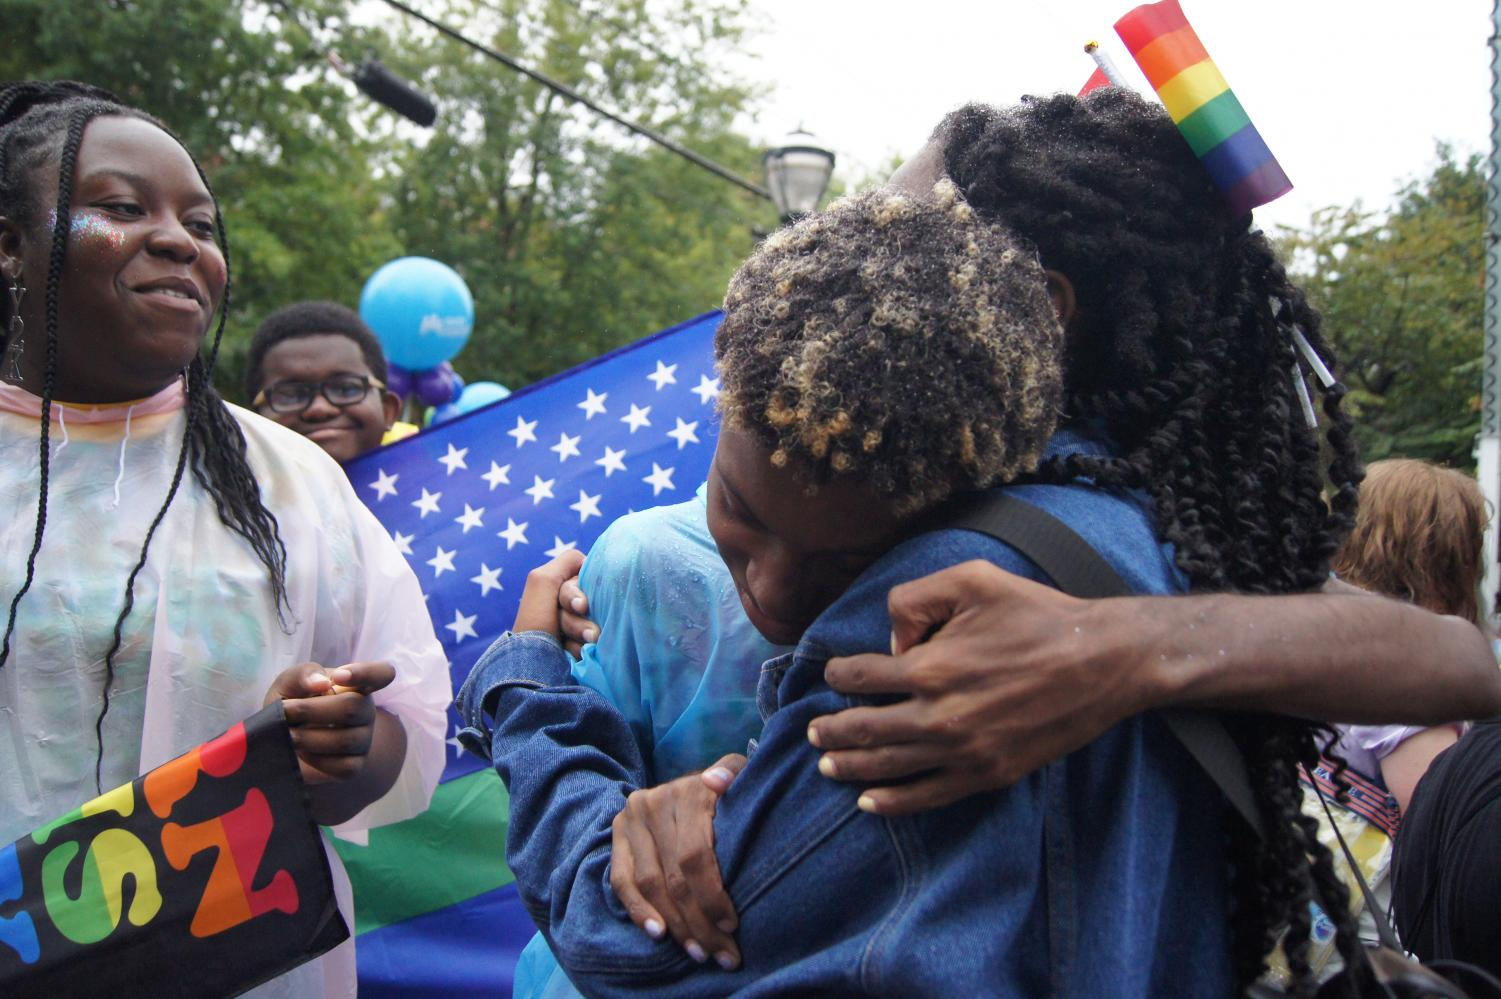 Isiah Ramsby and Gabrielle Merit, co-leaders of the GSA, hug as the parade marches on behind them.